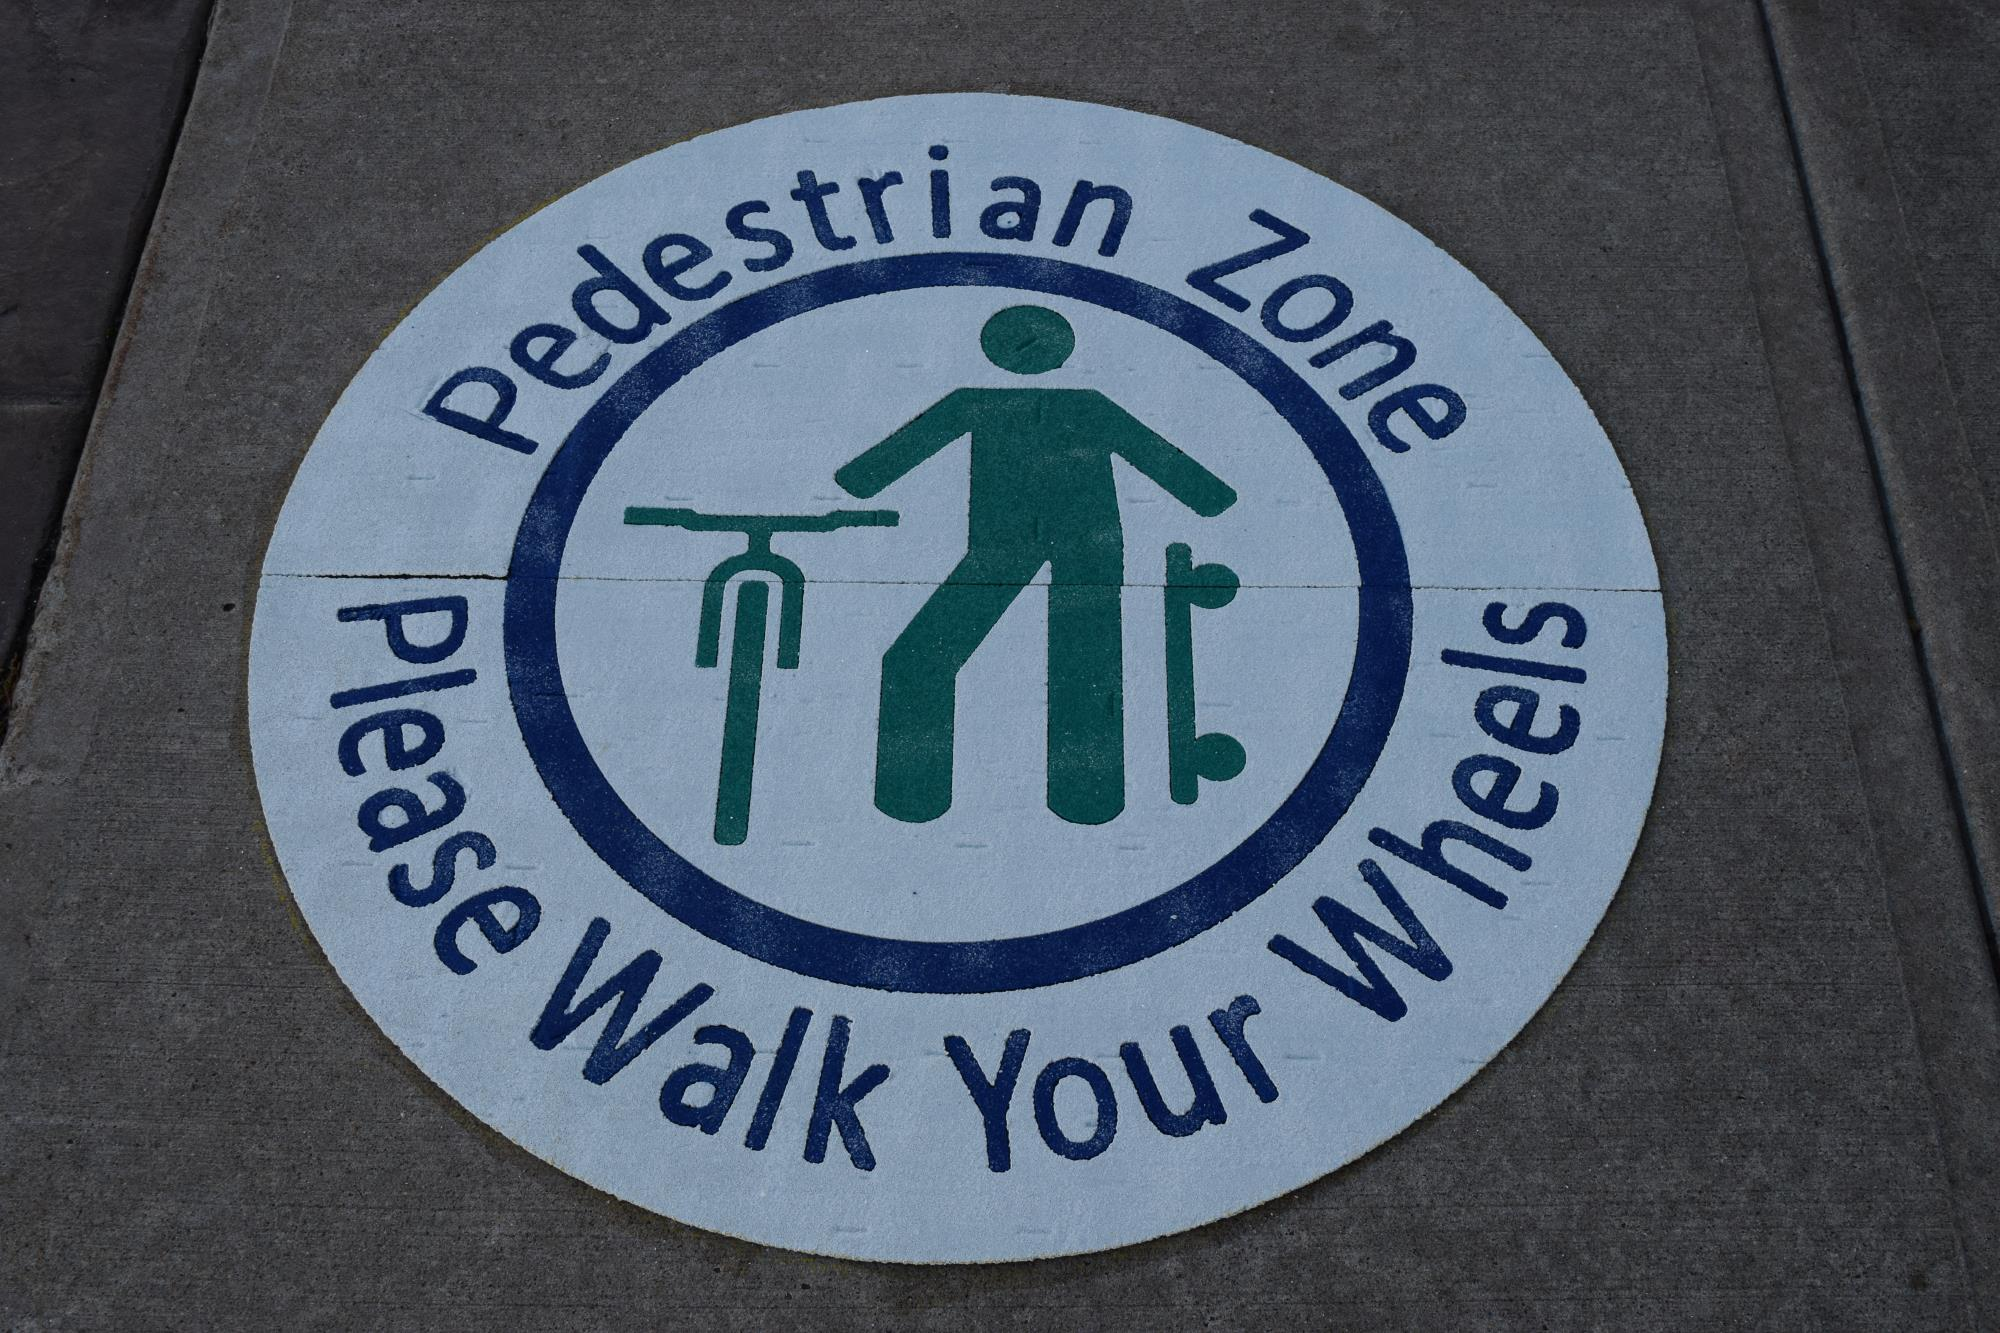 Walk your wheels sign